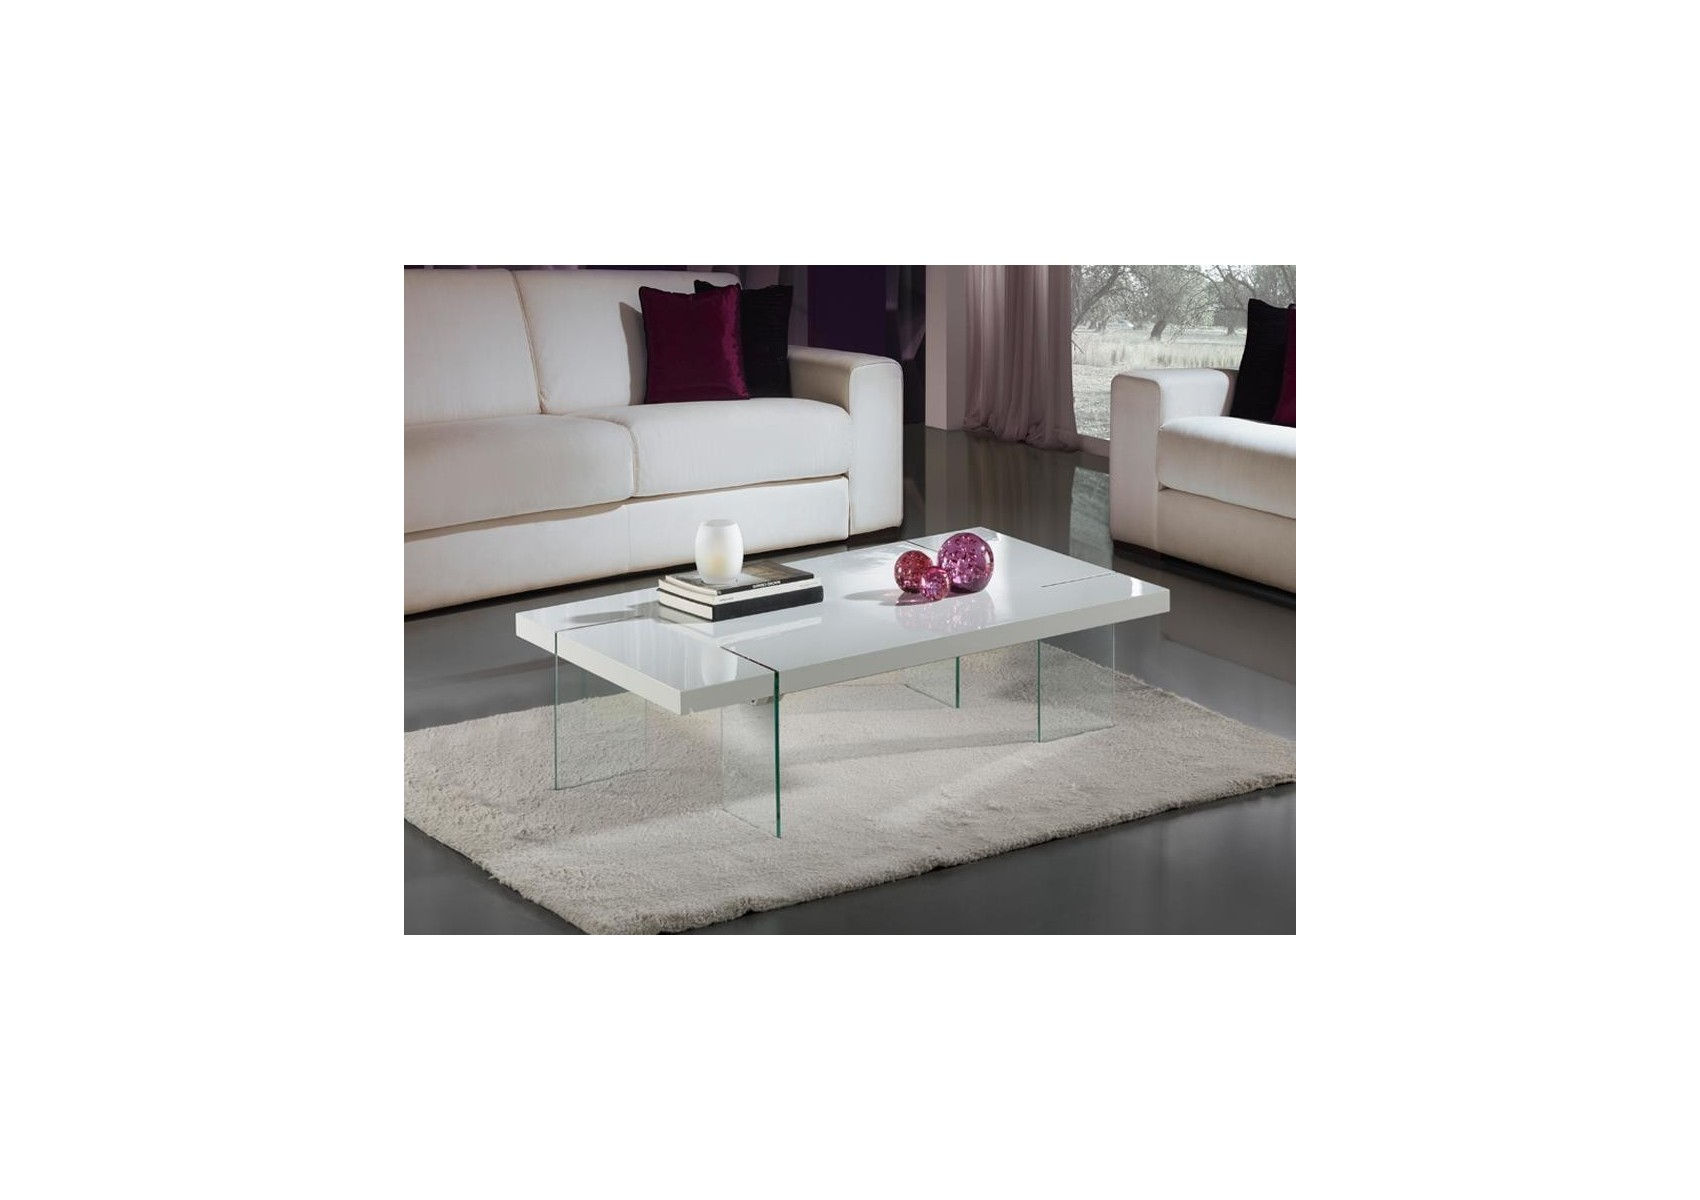 Table basse design laqu blanc et verre tremp brisa deco schuller boit - Table basse laque blanc design ...